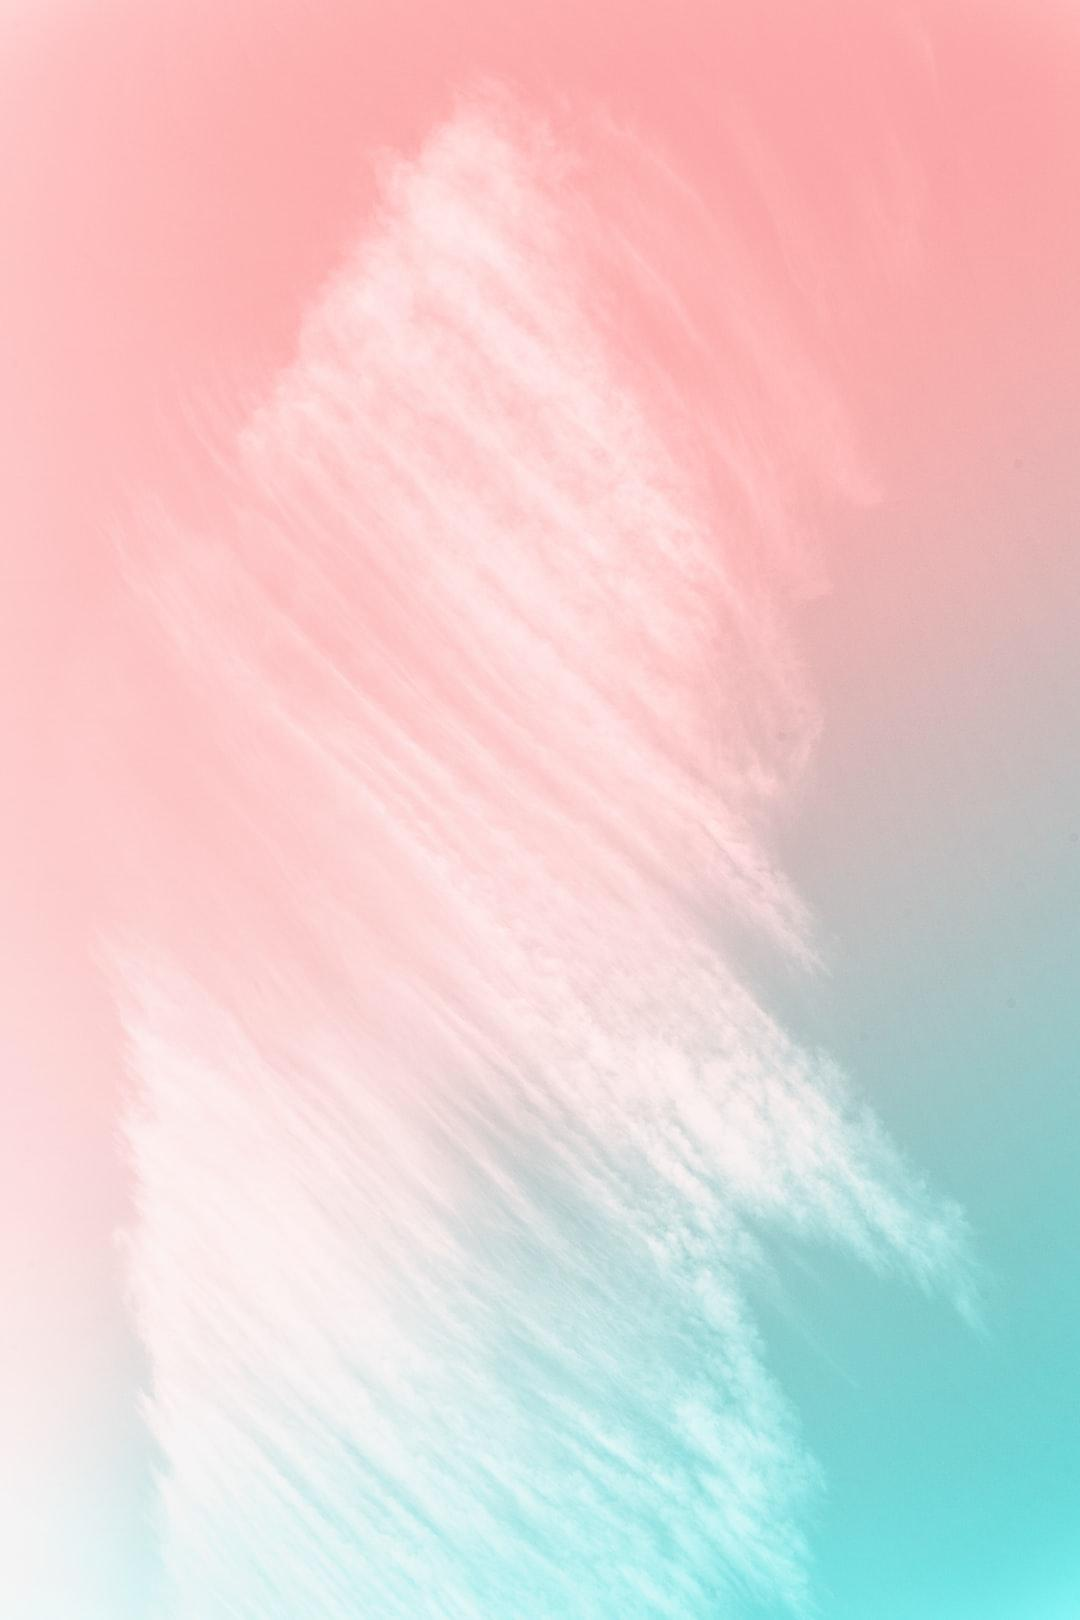 Download for free 55+ pastel aesthetic soft desktop wallpapers. Pastel Aesthetic Landscape Wallpapers - Wallpaper Cave